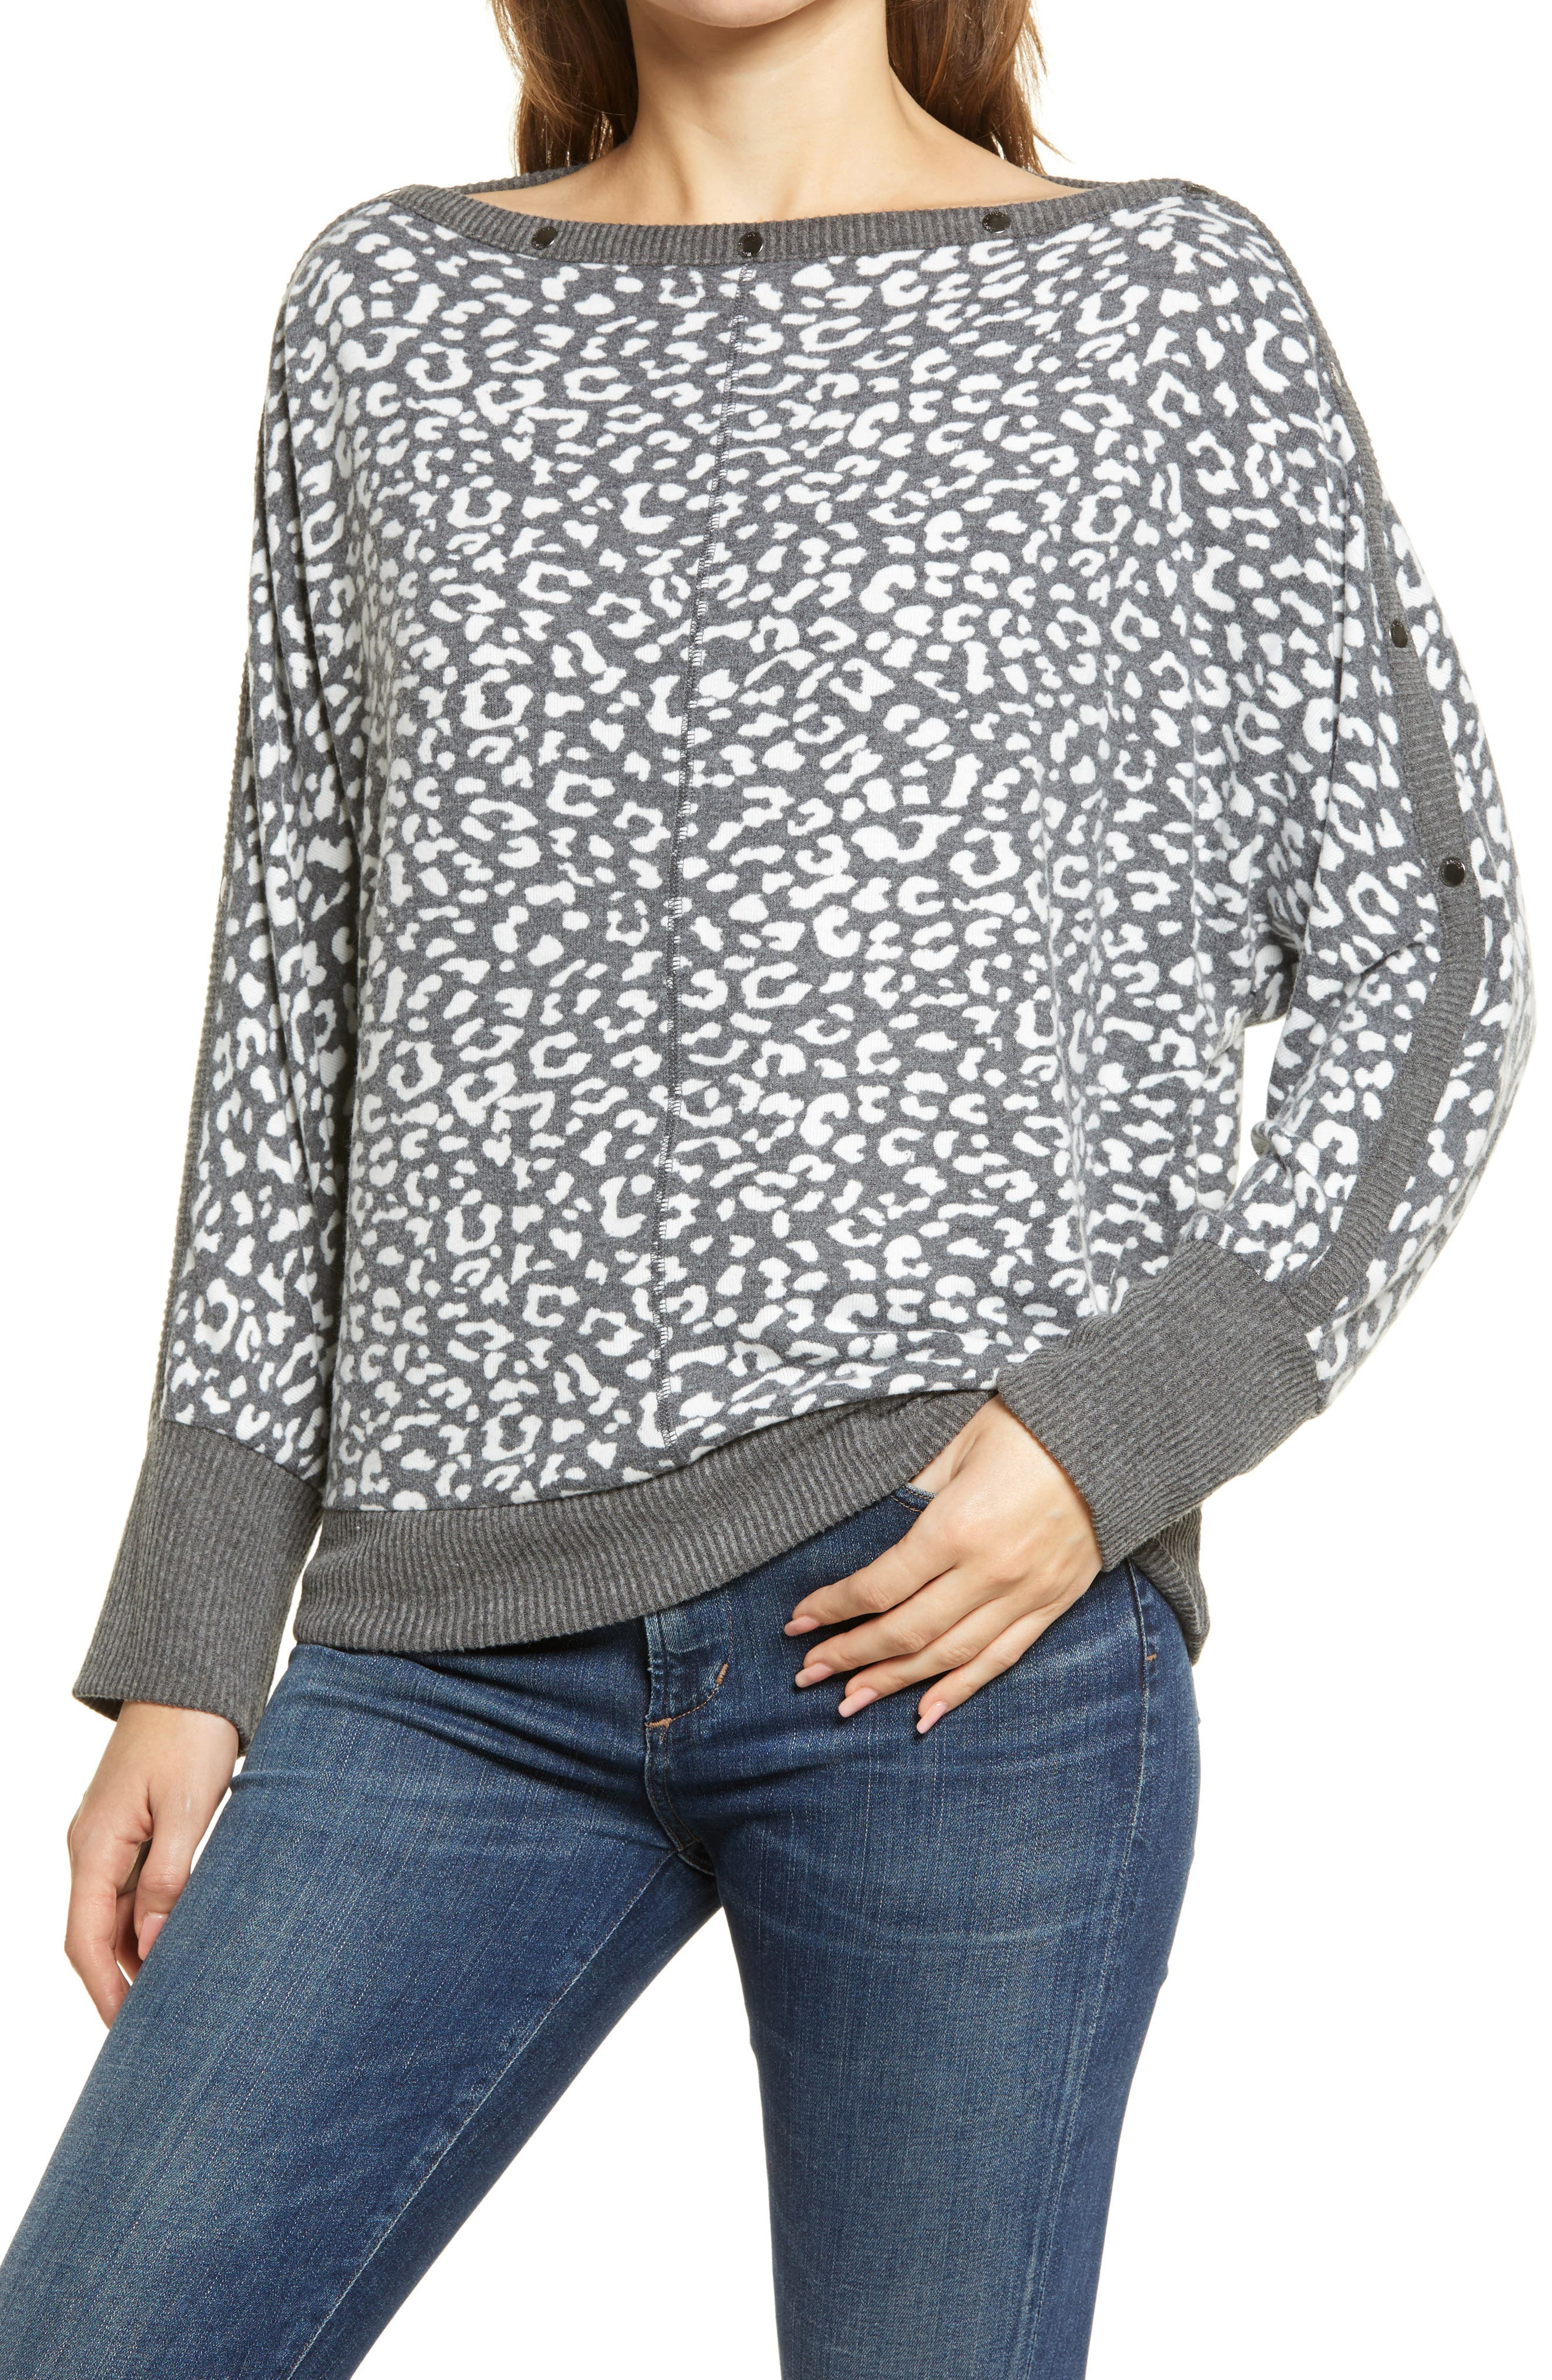 Vince Camuto Snap Trim Dolman Sleeve Sweater | Nordstrom